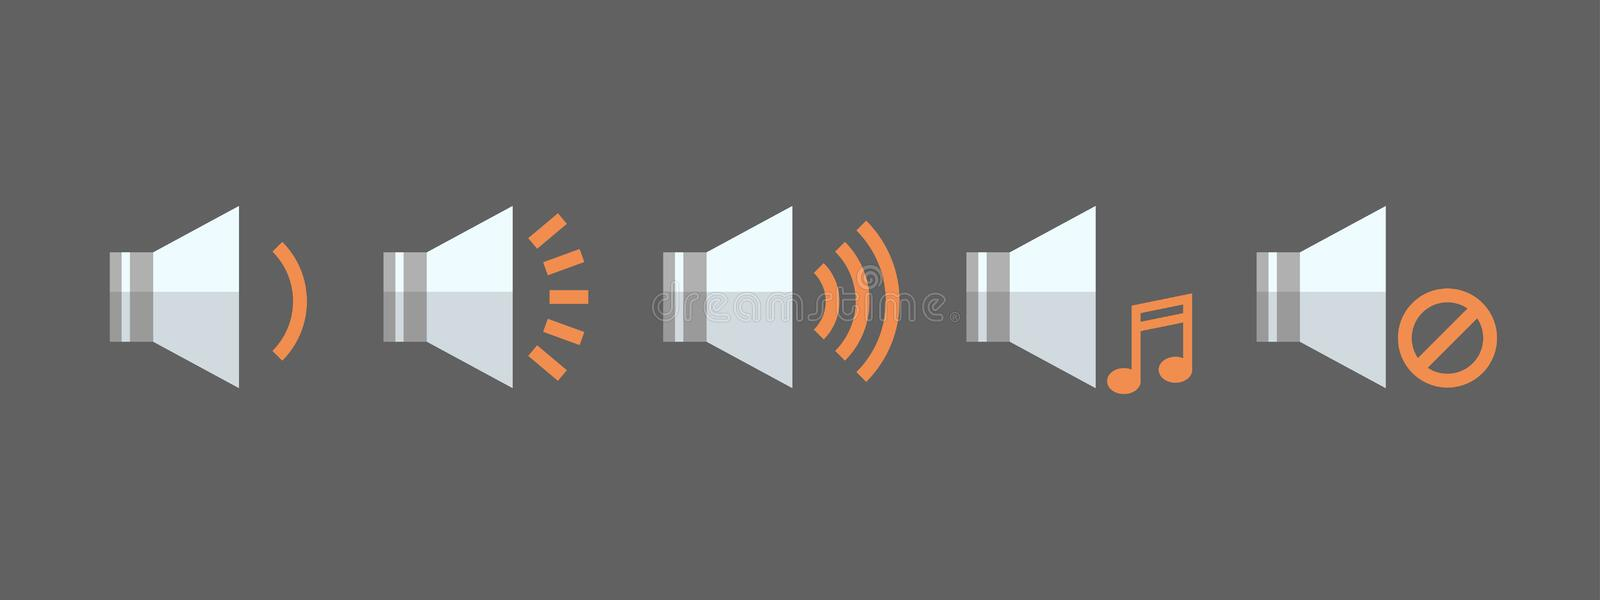 Music Player Volume Icon Set Audio Listening App Interface Button royalty free illustration